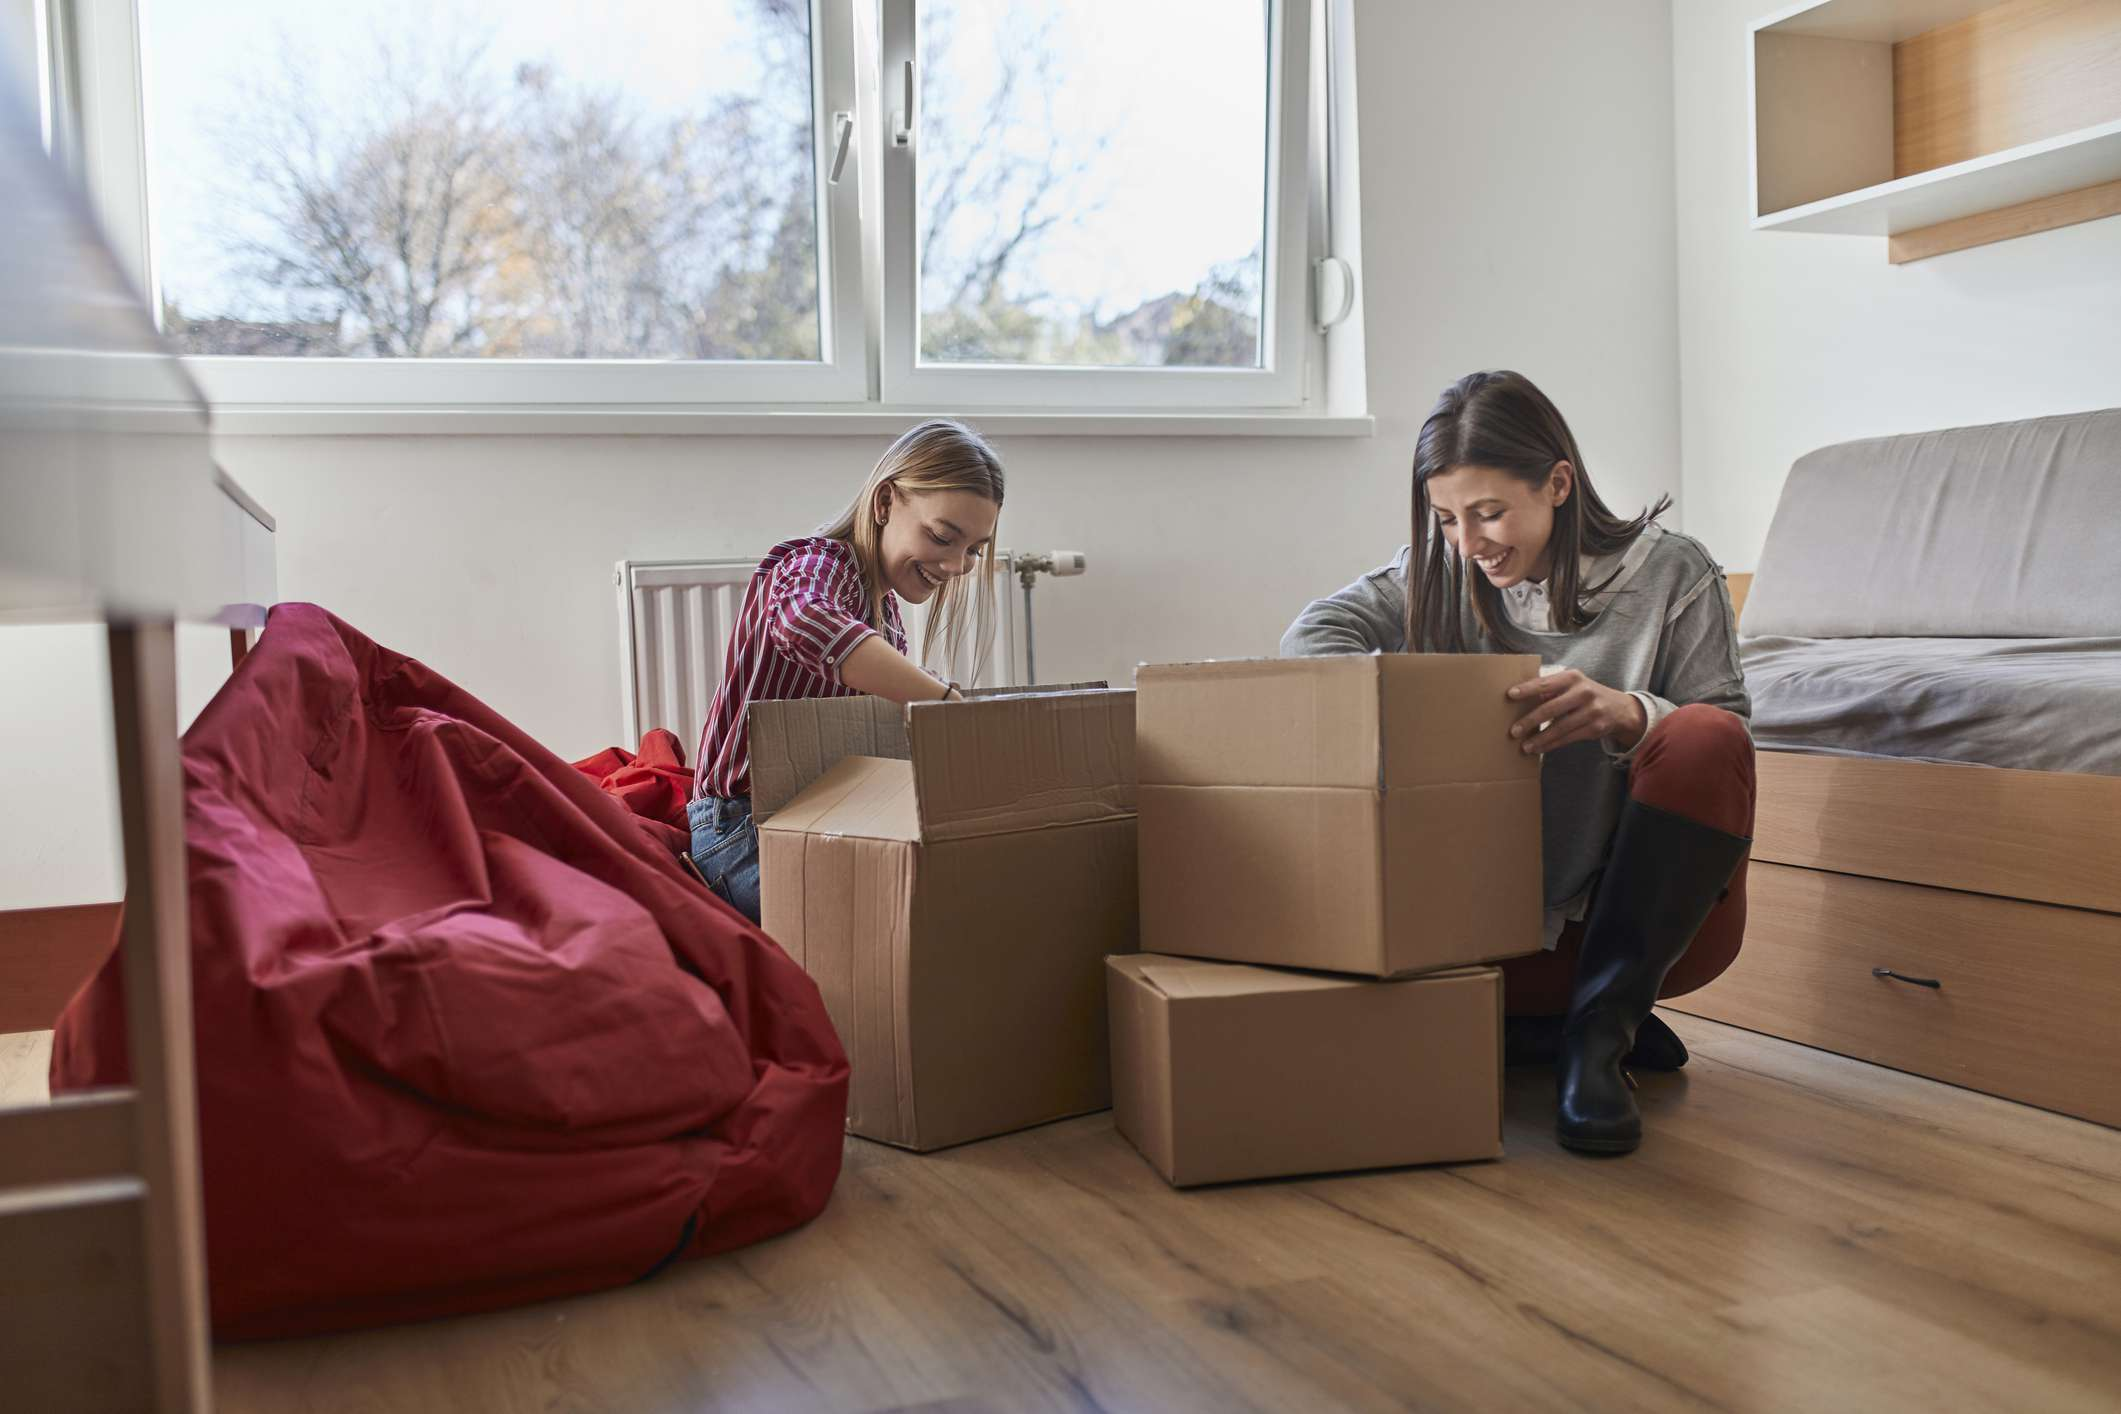 Two young women unpacking cardboard boxes in a room